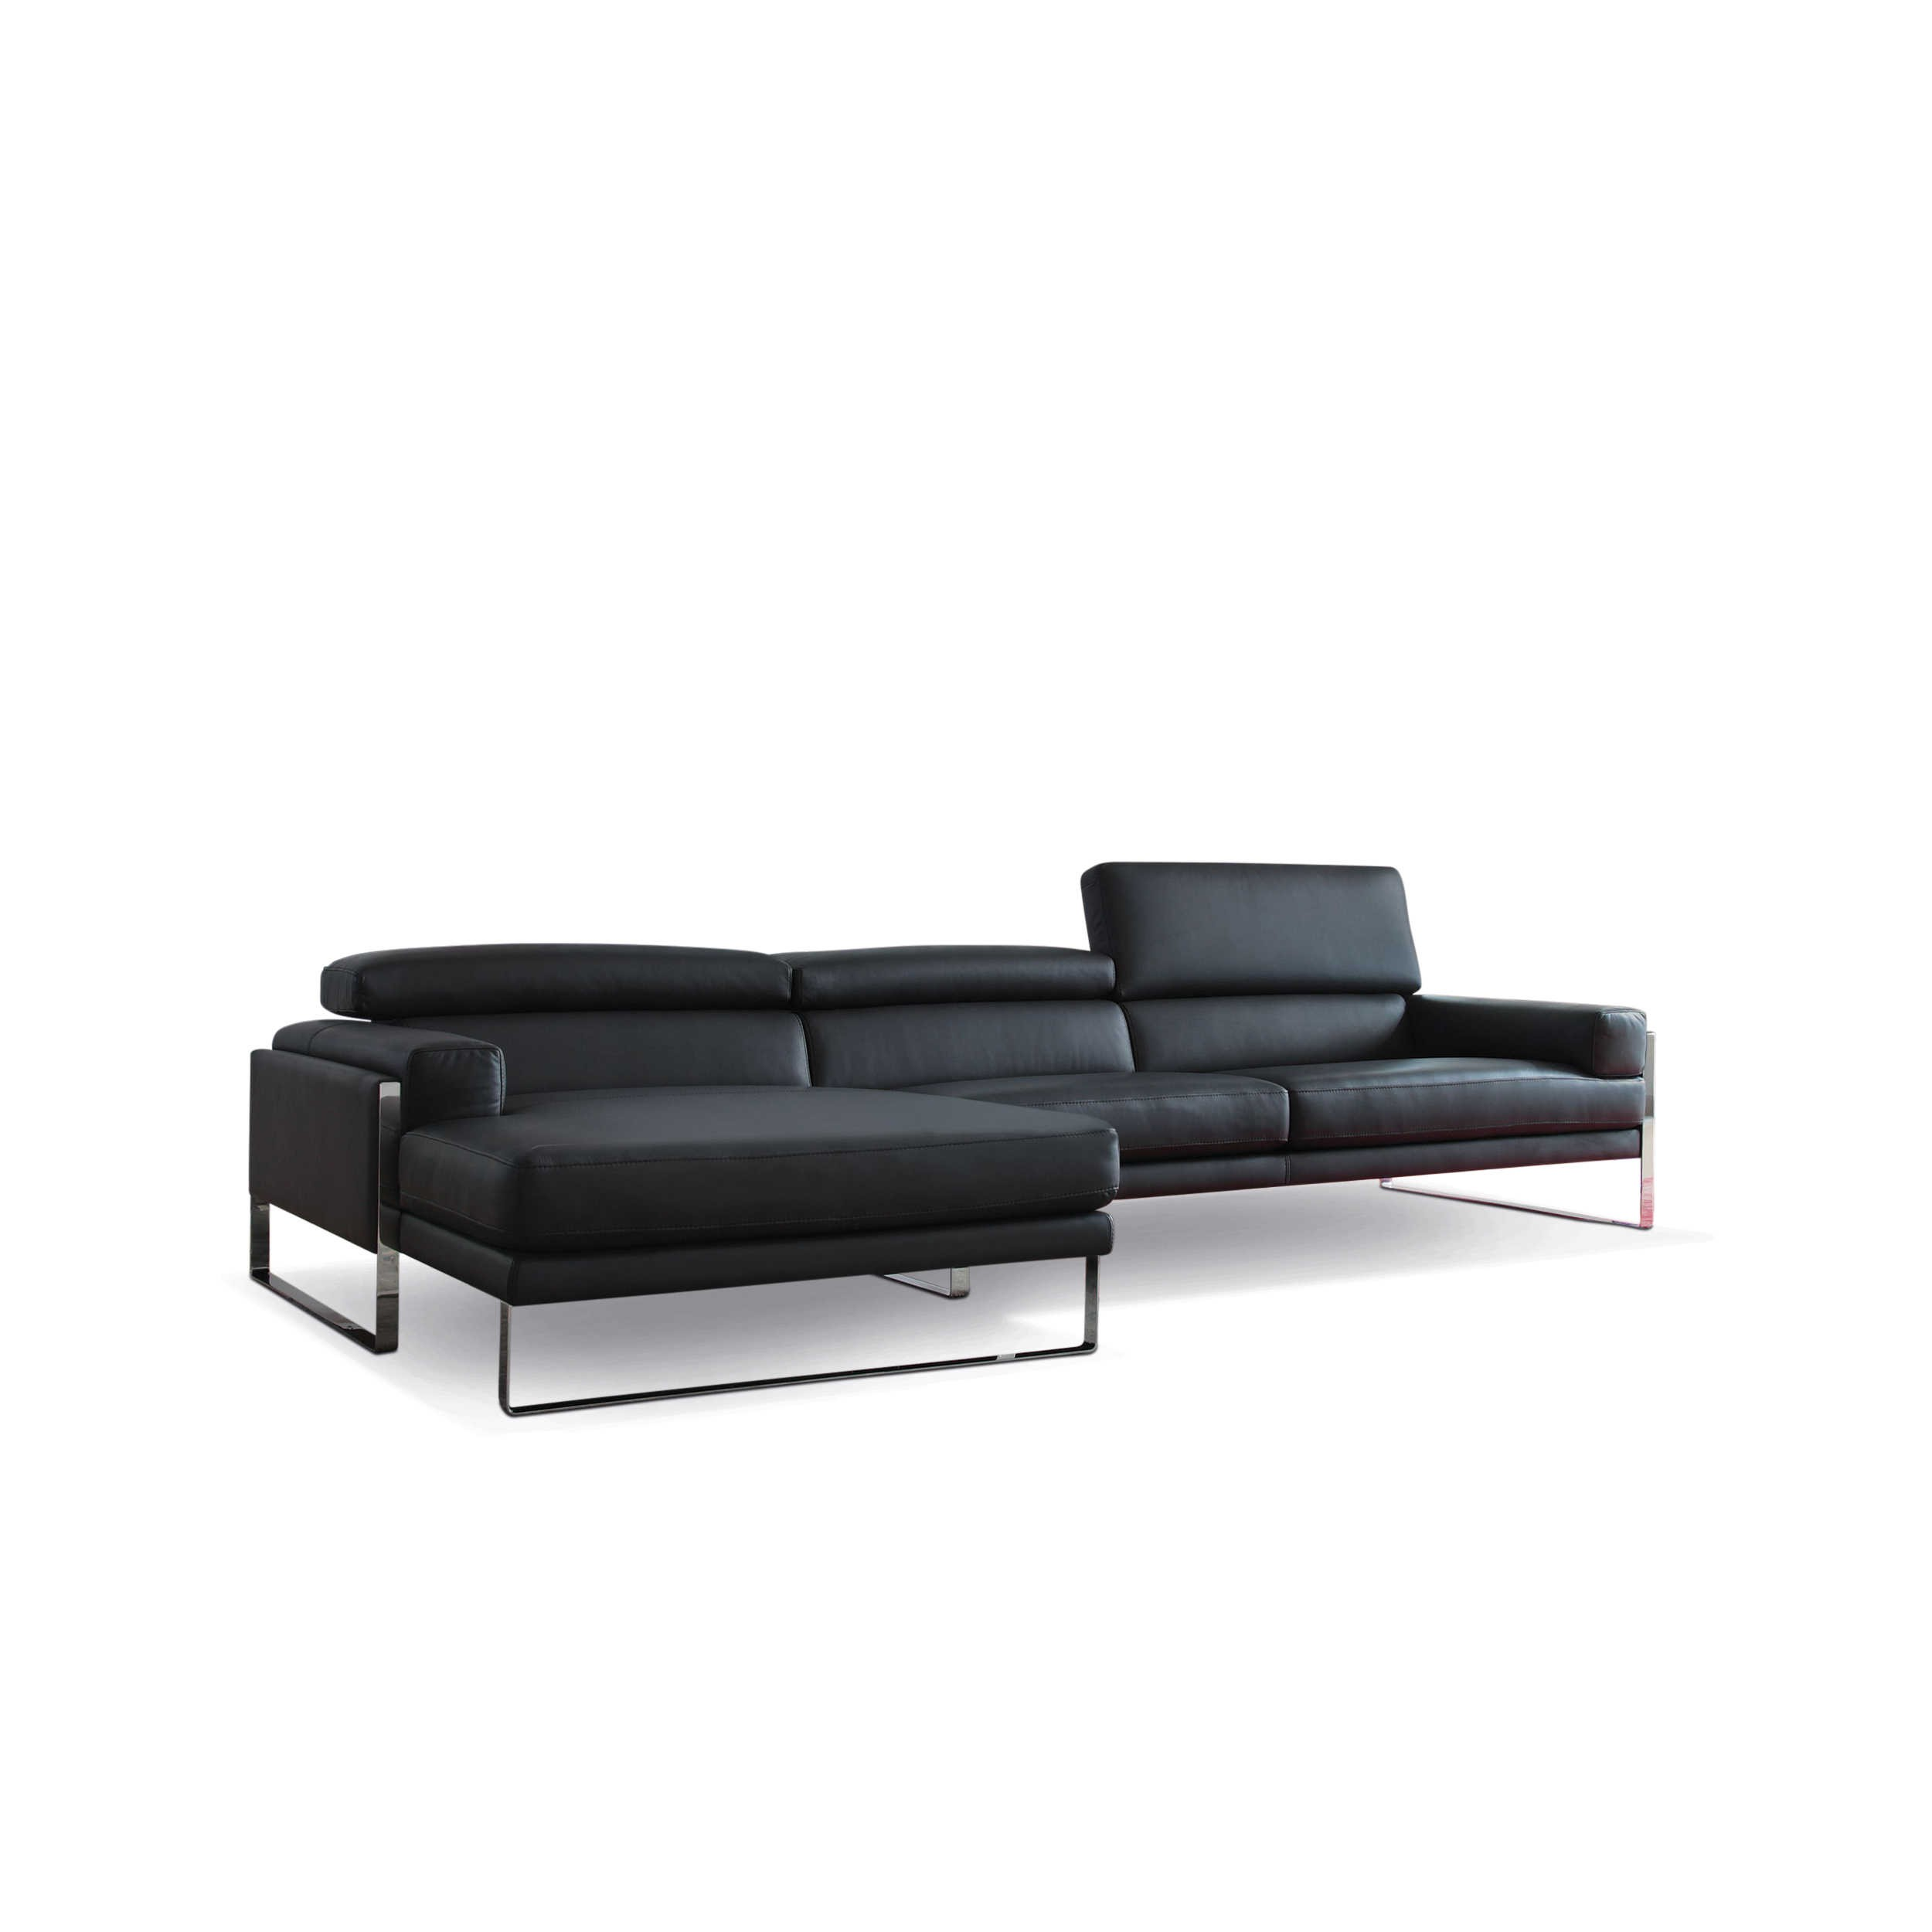 calia ecksofa romeo cal 808 schwarz leder online kaufen bei woonio. Black Bedroom Furniture Sets. Home Design Ideas